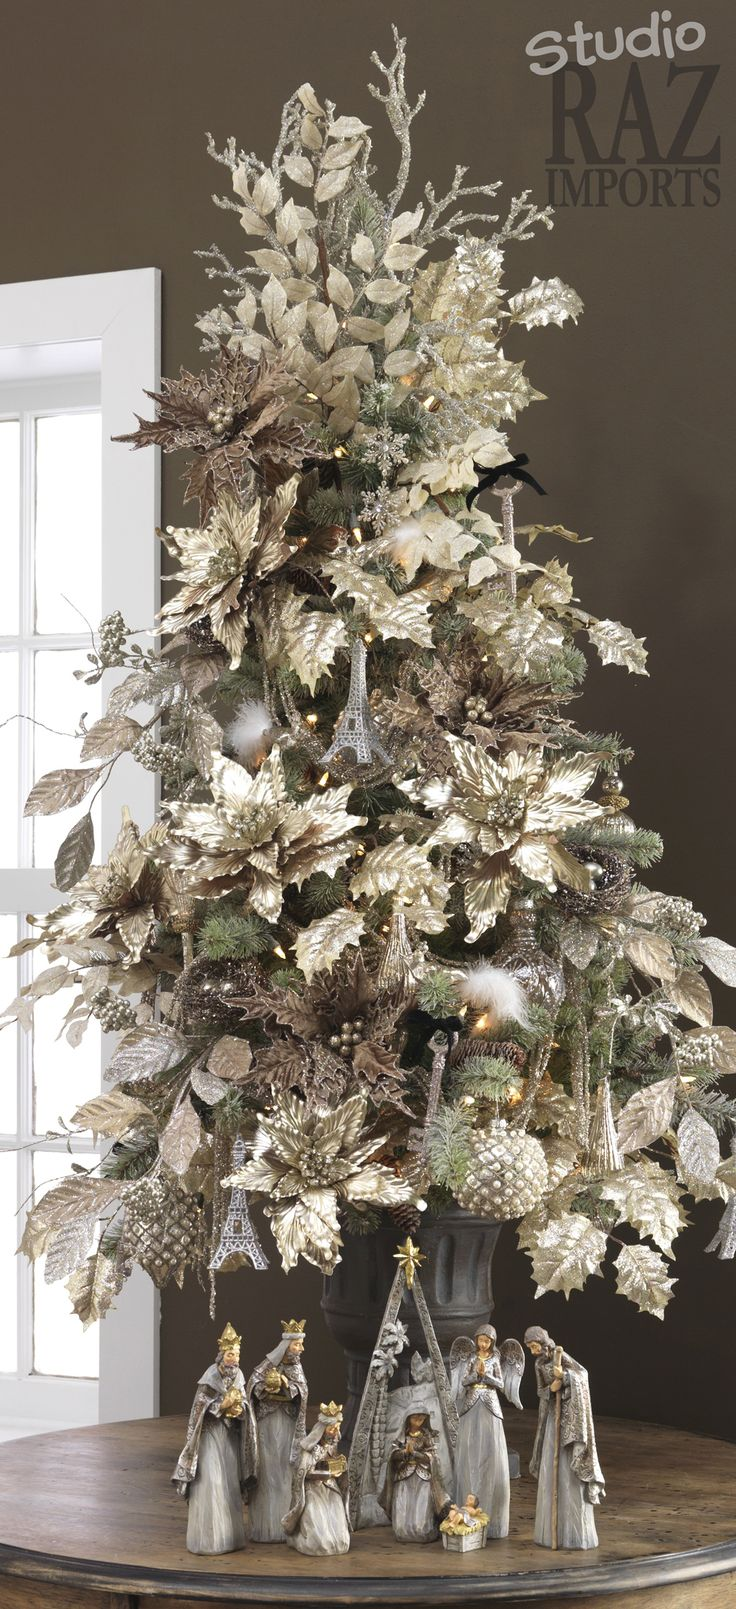 Tabletop christmas tree decorating ideas - Tabletop Christmas Tree Decorating Ideas 52